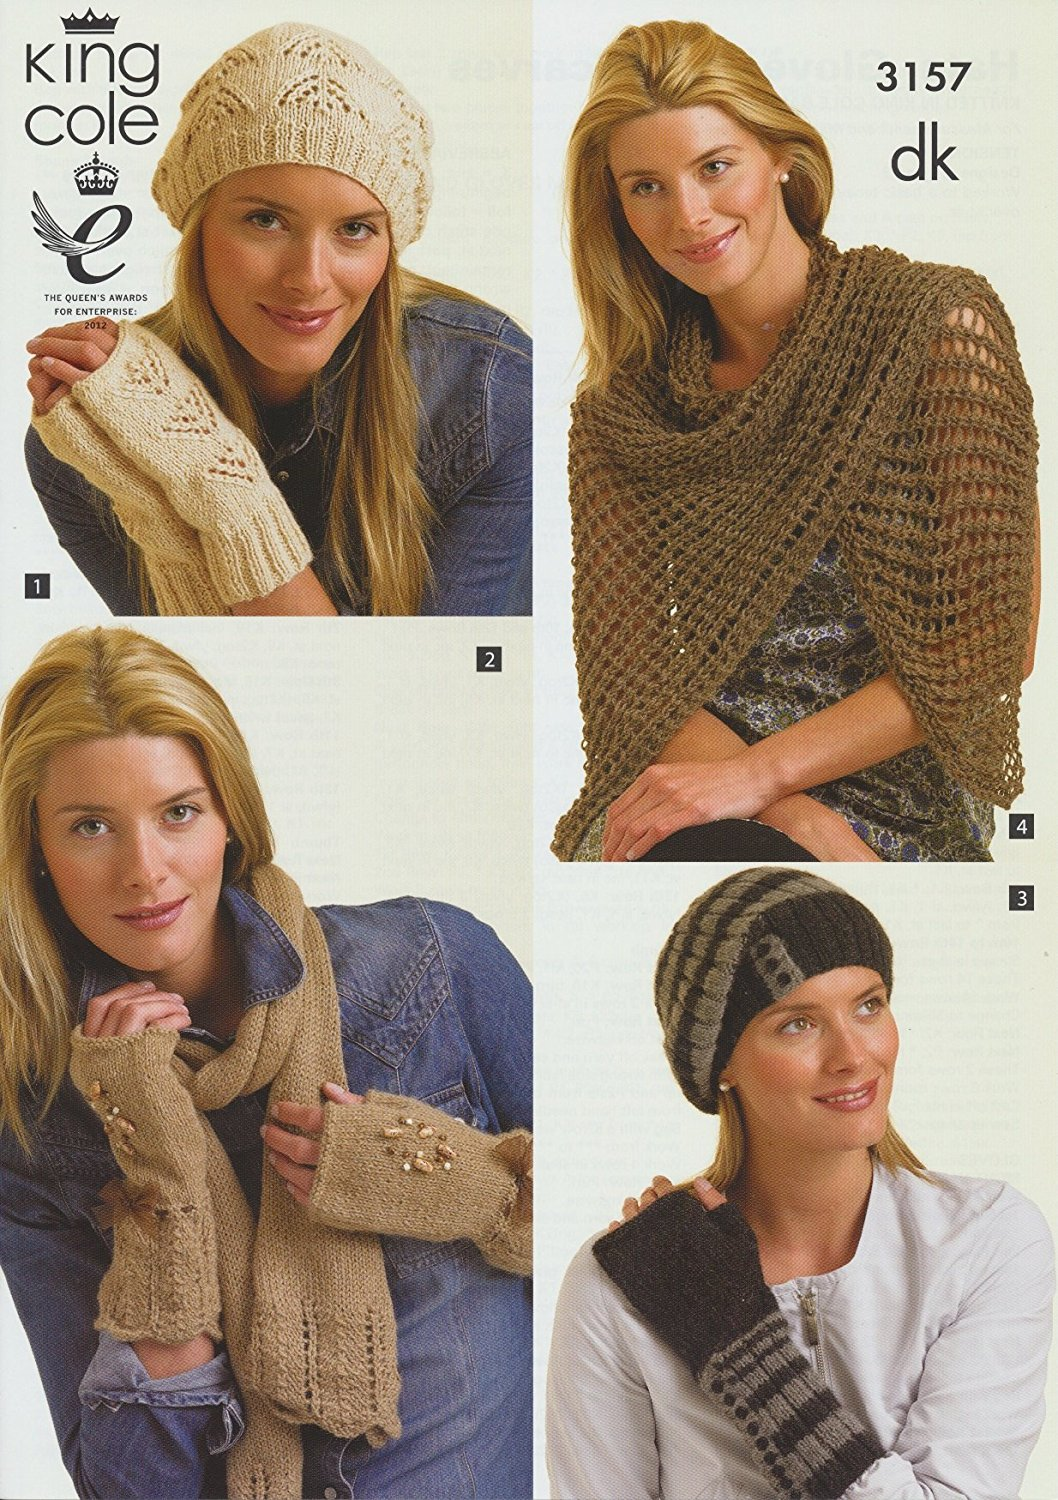 e9d101bd13d Get Quotations · King Cole Ladies DK Knitting Pattern Womens Winter Hats